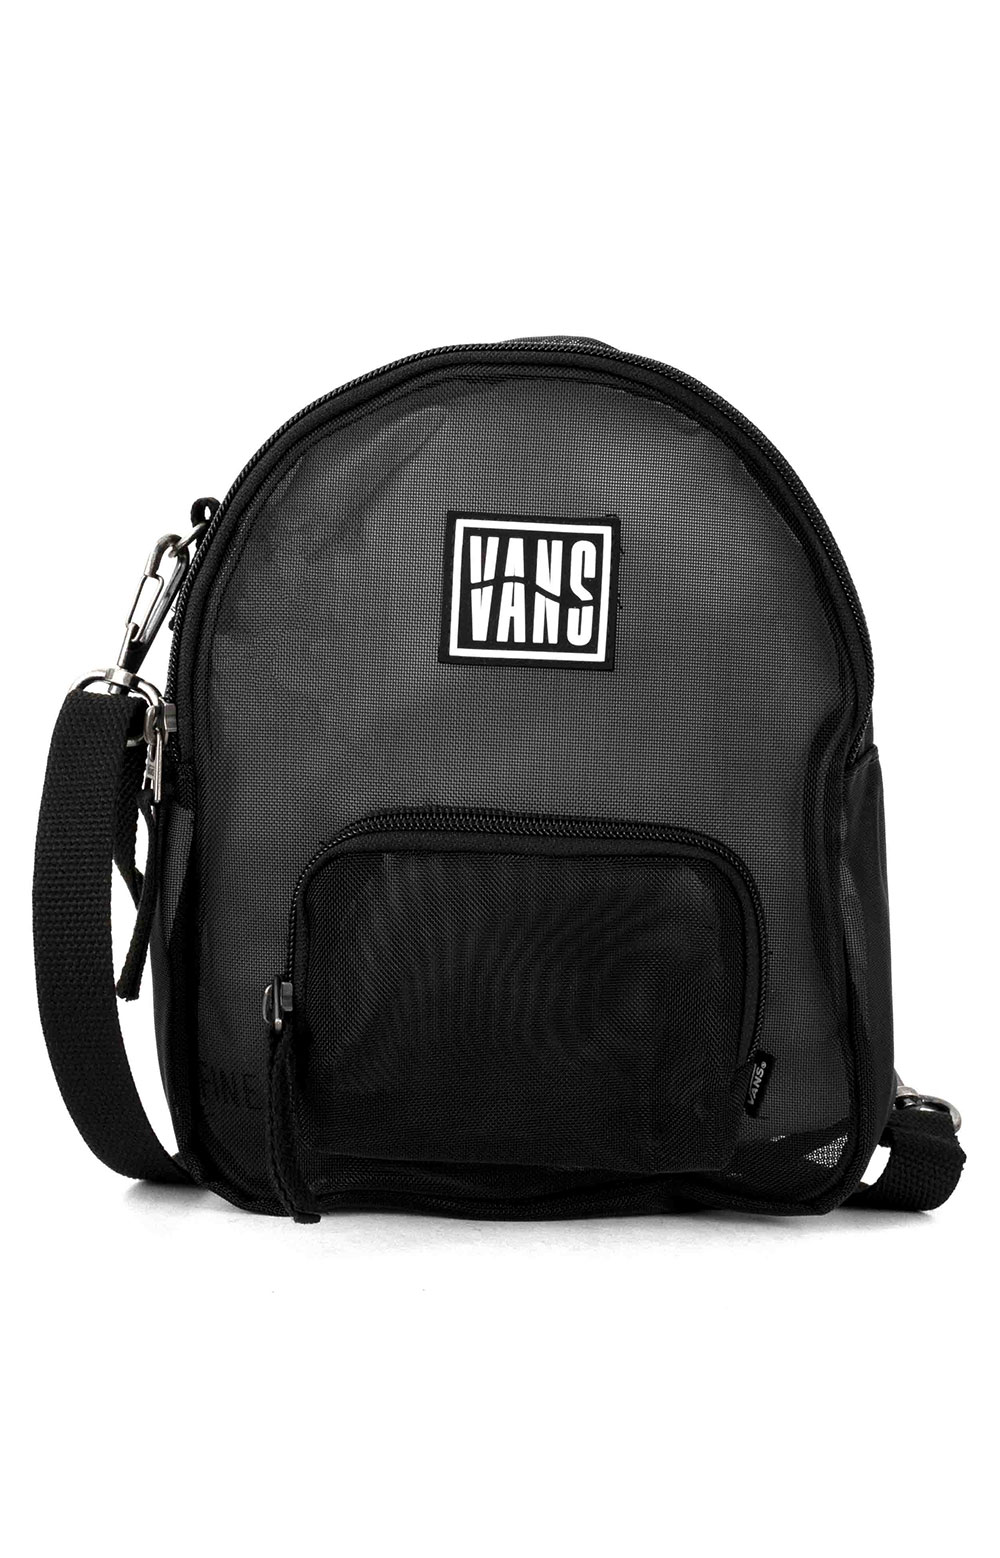 Two Timing Mesh Mini Backpack/Bag - Black